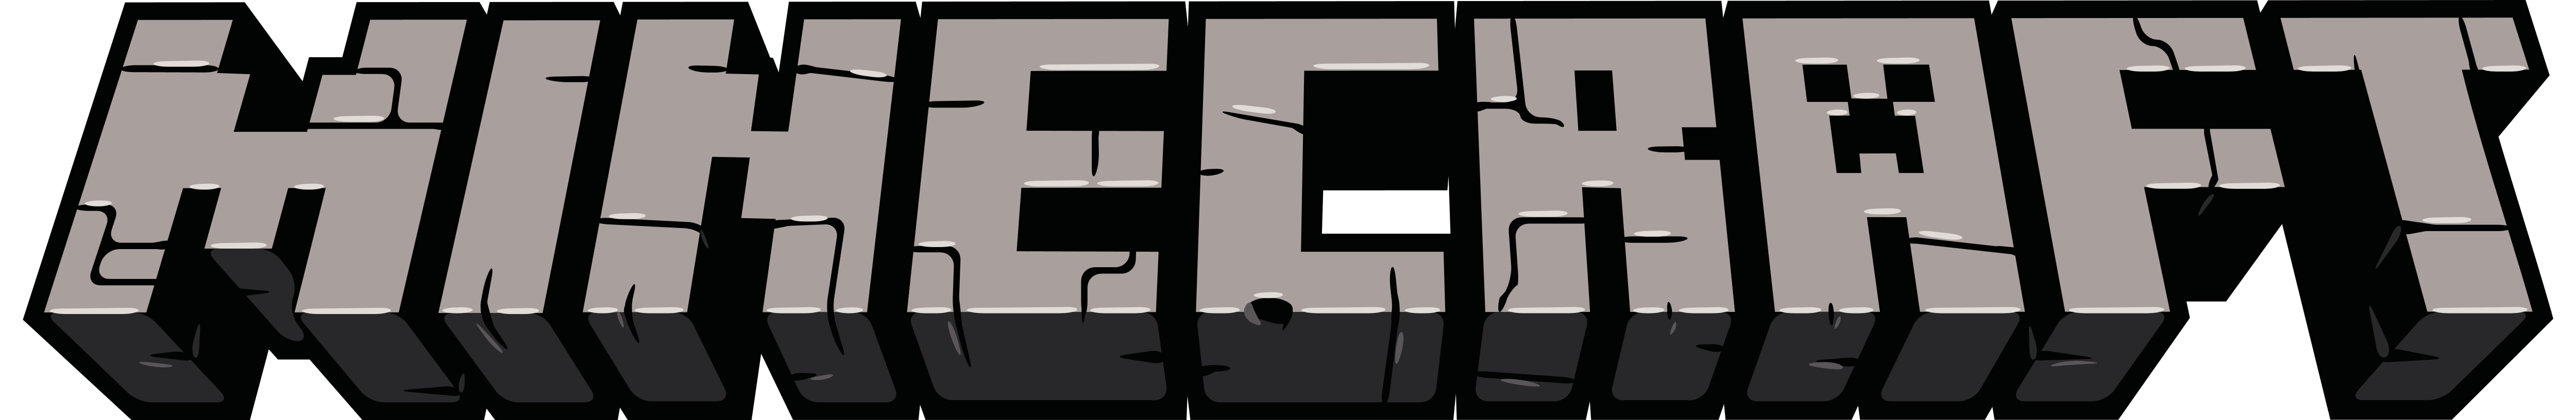 https://logos-download.com/wp-content/uploads/2016/03/Minecraft_logo.png